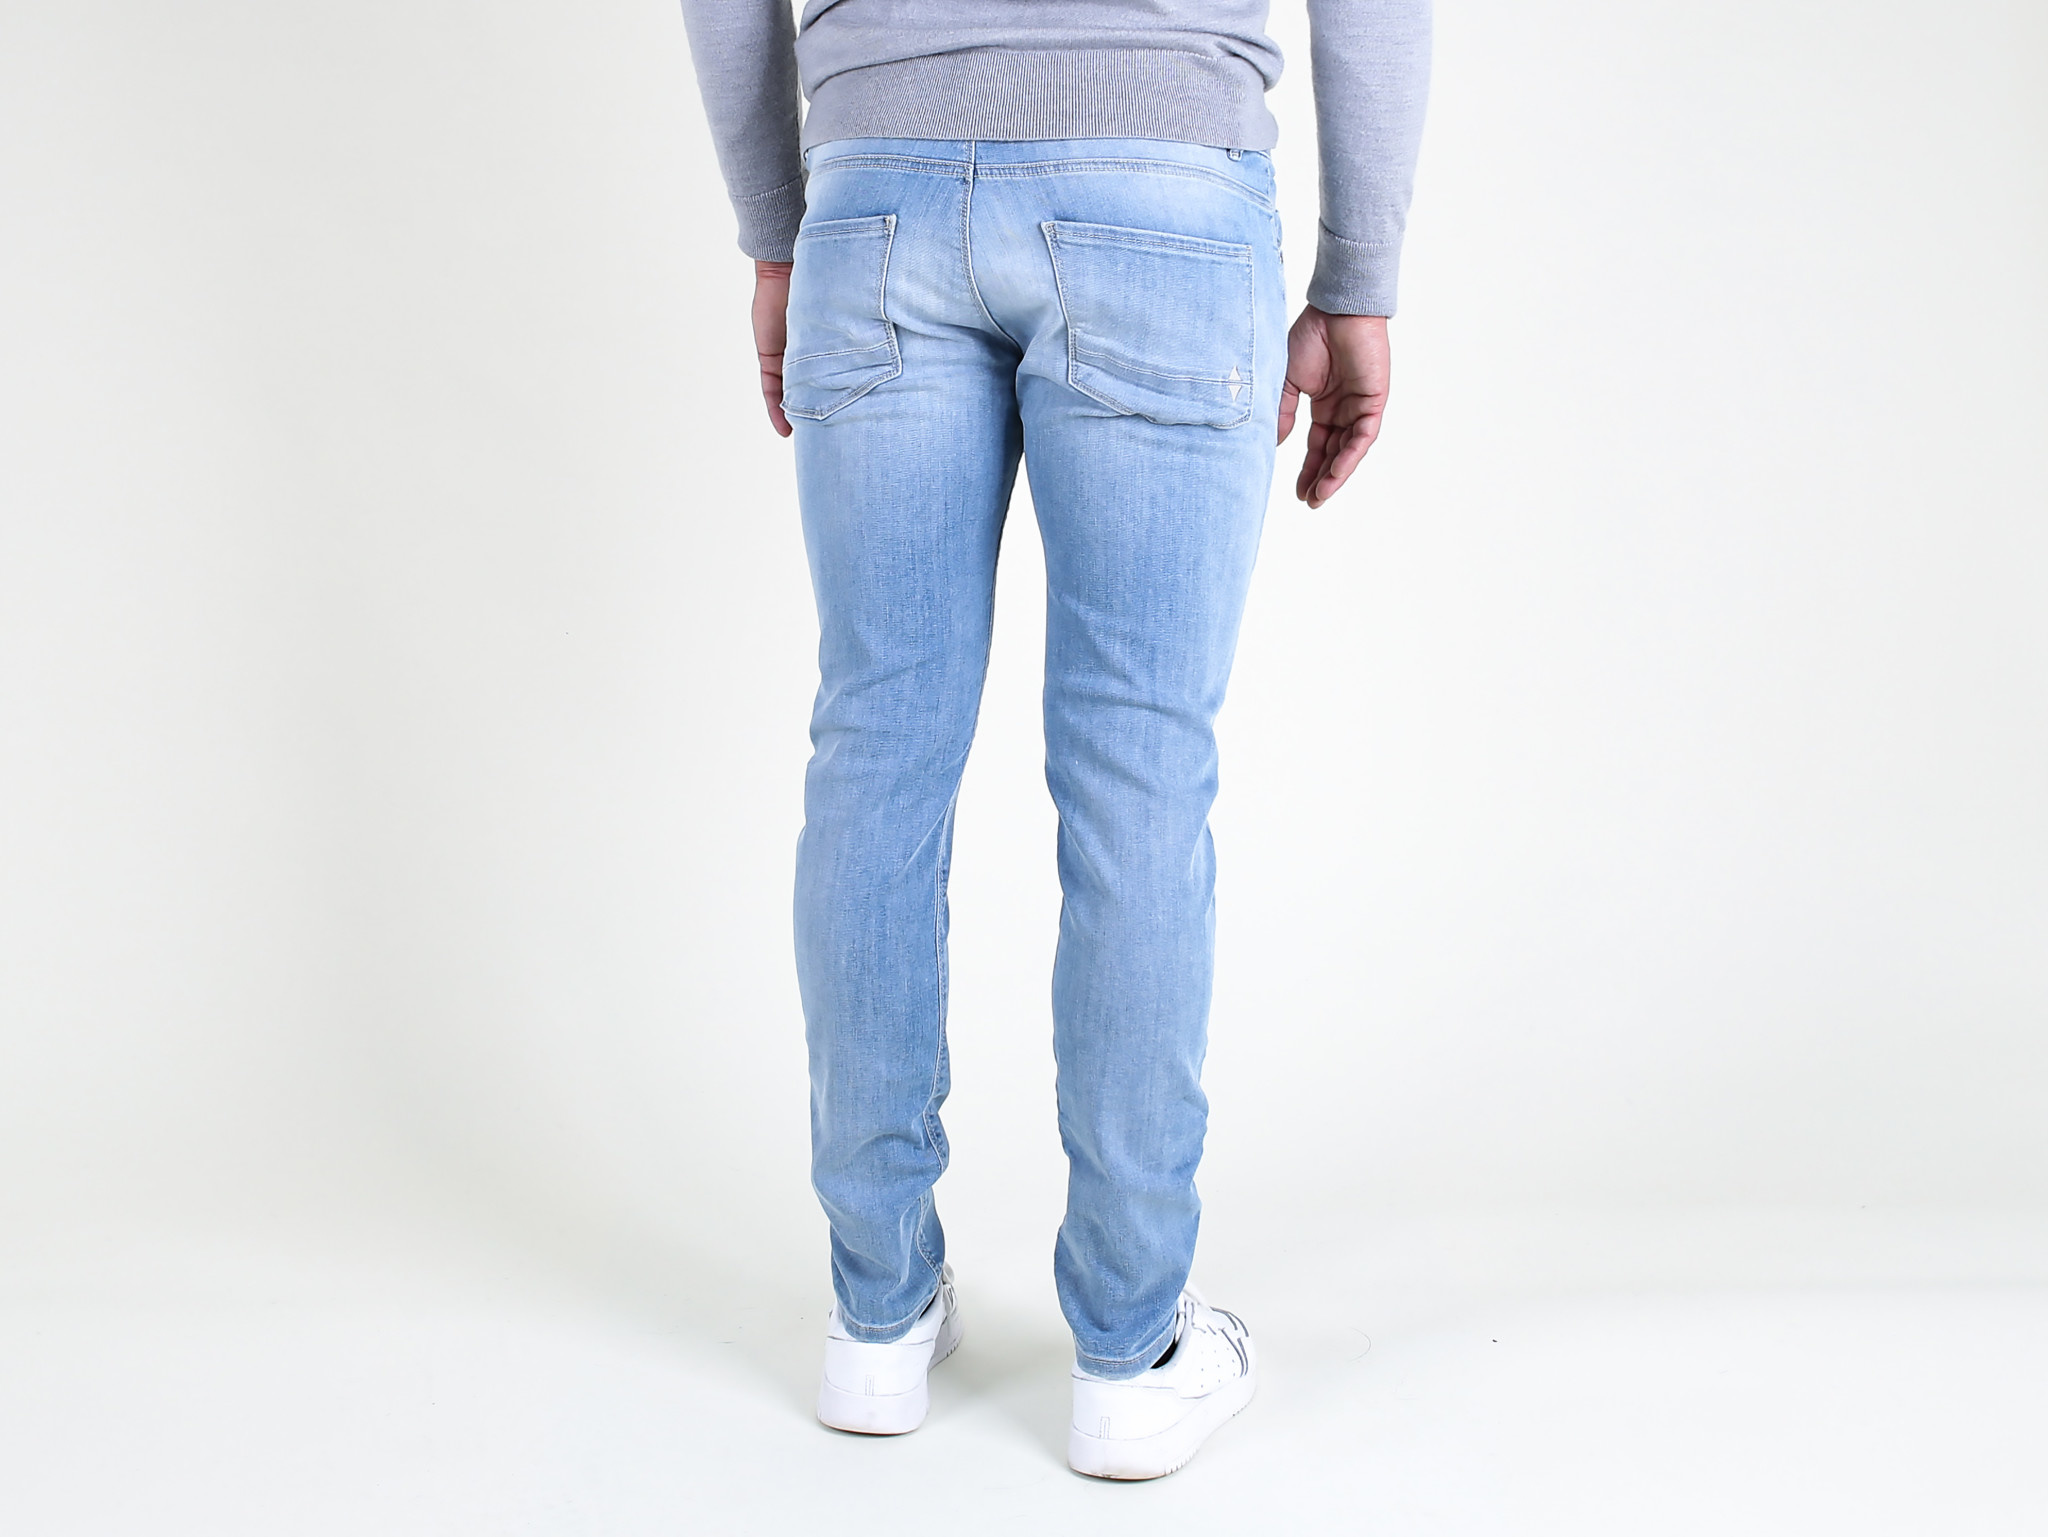 Fifty Four Fifty Four Clops J360-FA56 Skinny Jeans Medium Blue Washed